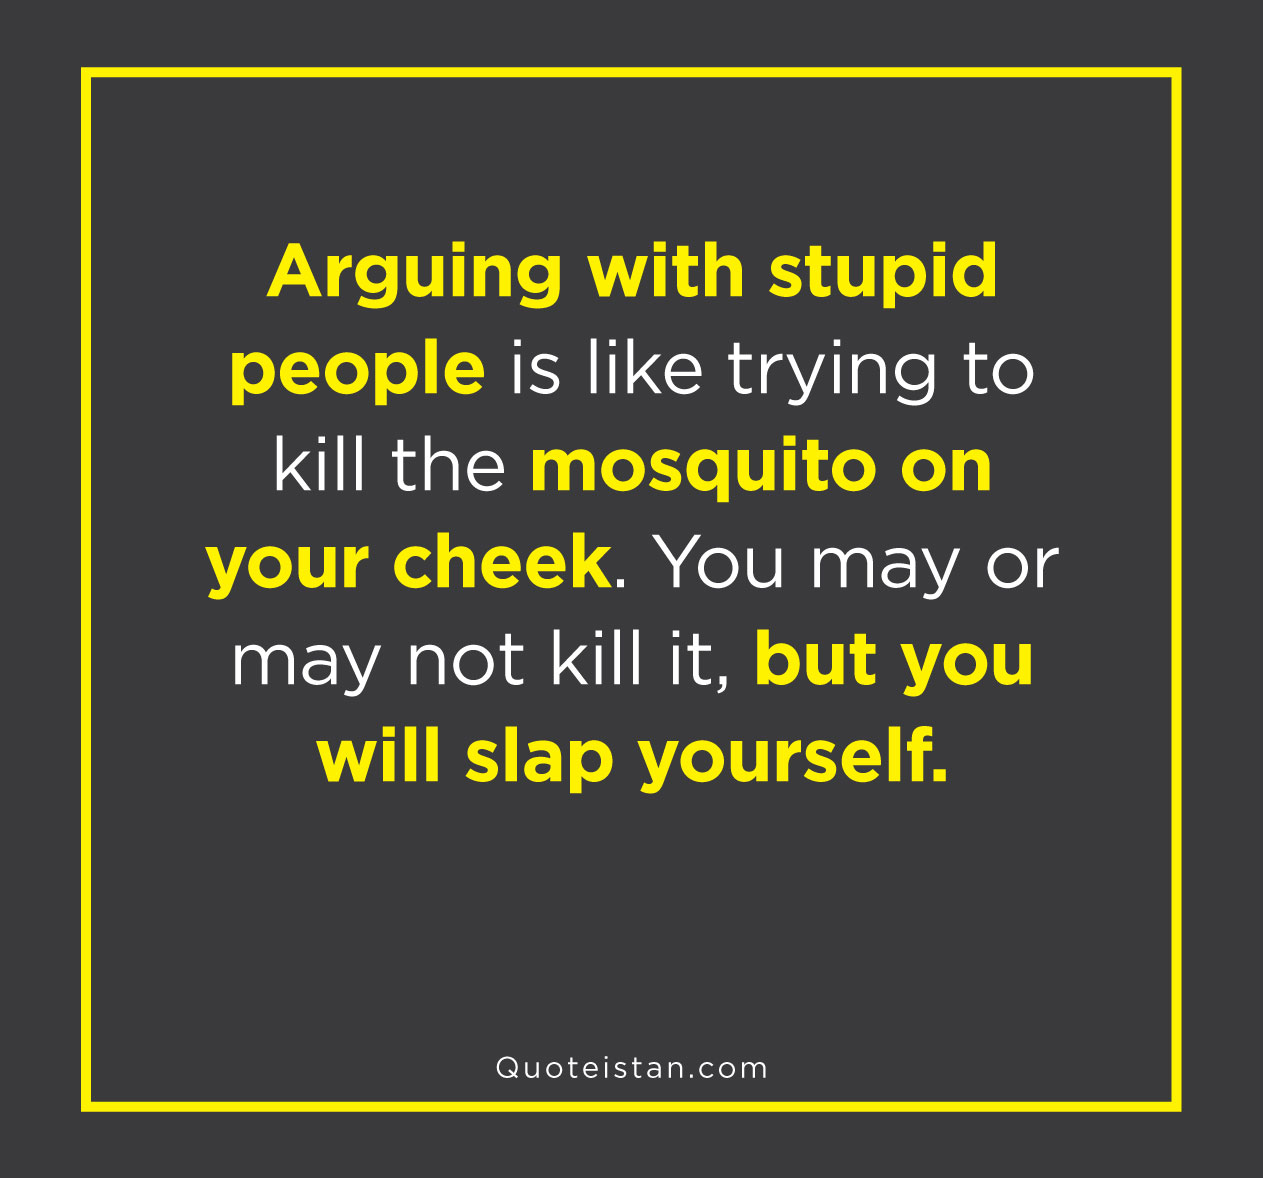 Arguing with stupid people is like trying to kill the mosquito on your cheek. You may or may not kill it, but you will slap yourself.